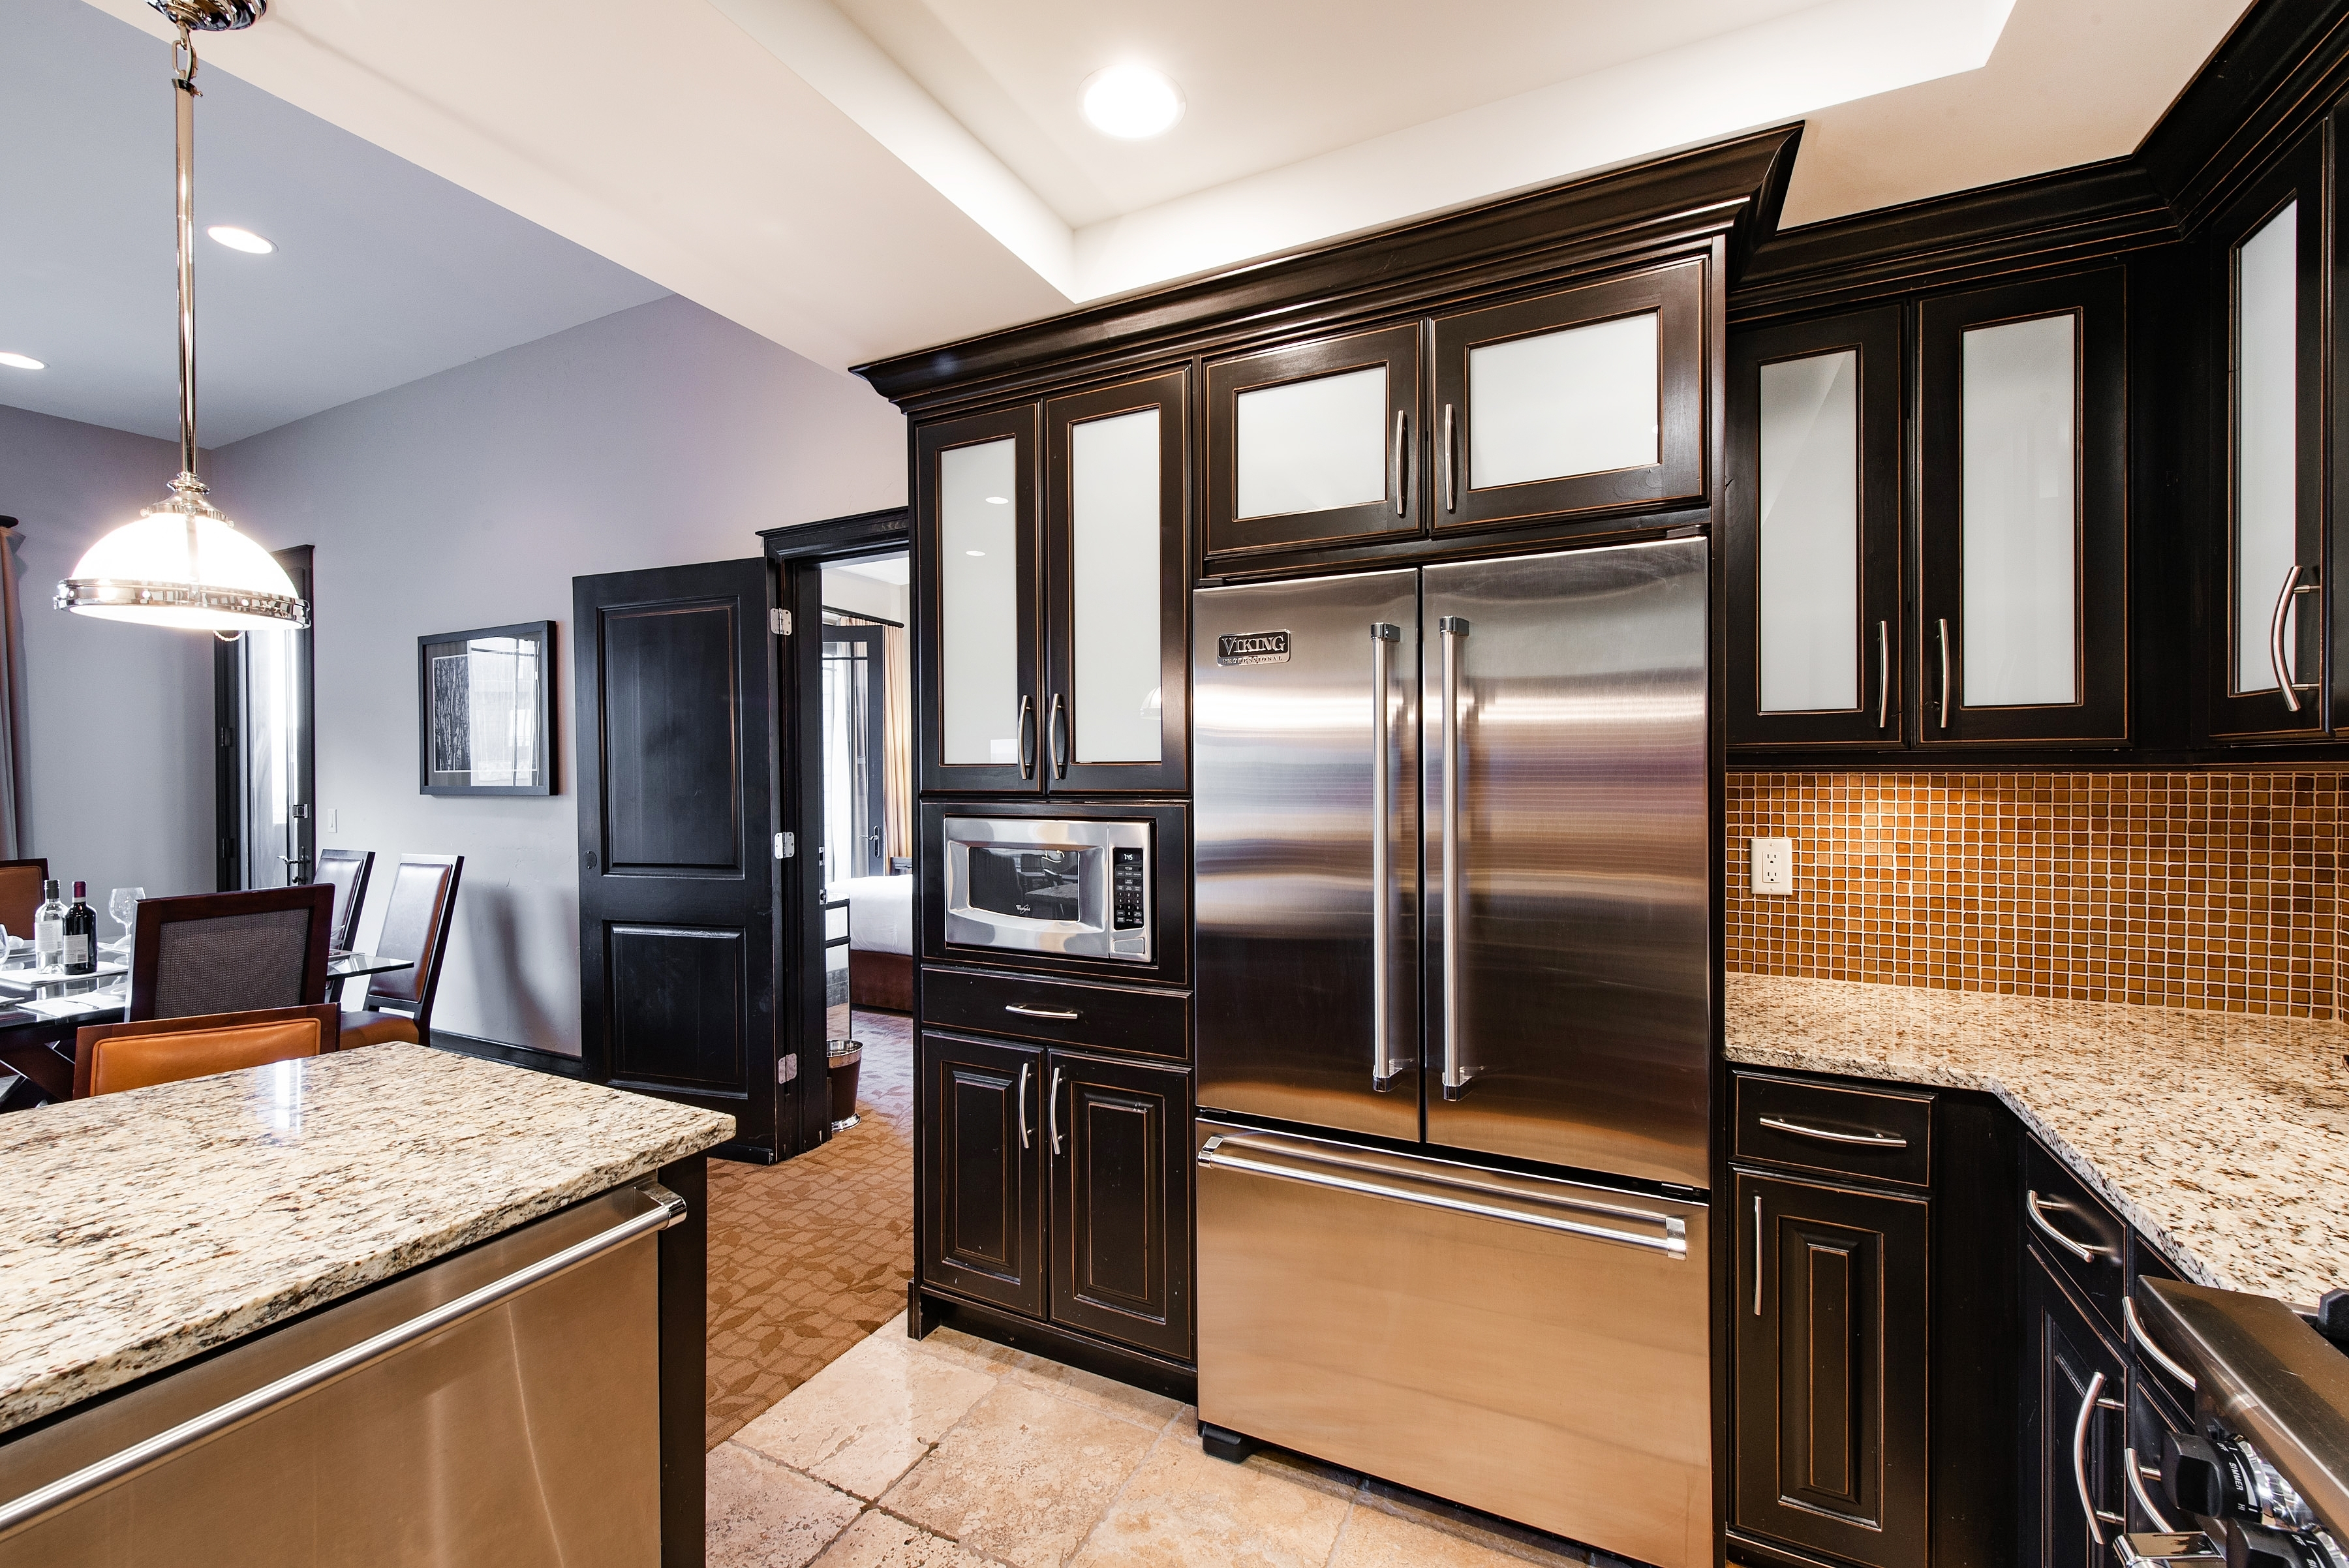 Spectacular 2 Bed 3 Bath condo with Kitchen and Living Room